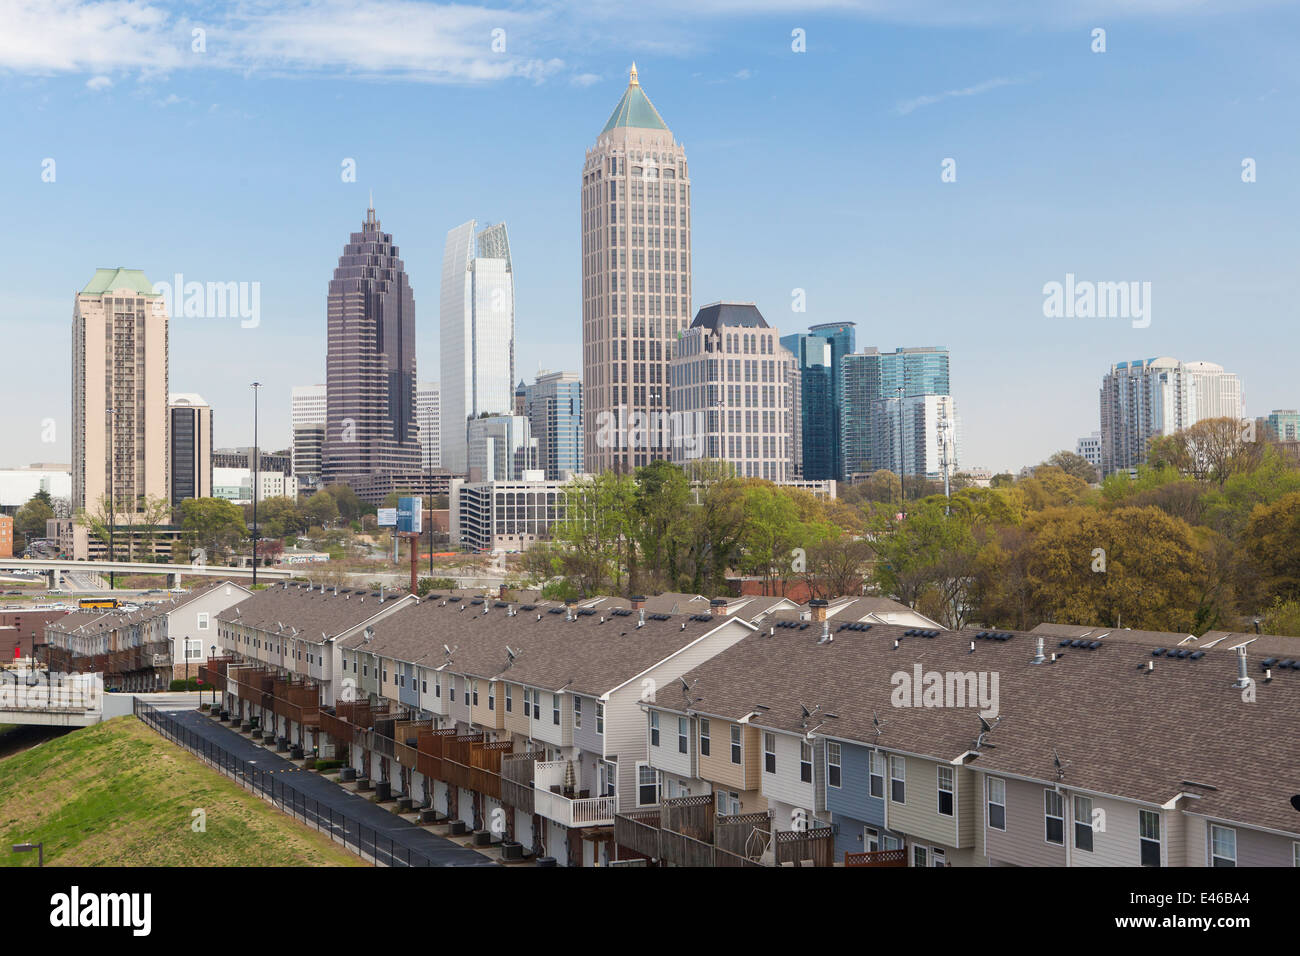 apartment buildings and city skyline atlanta georgia usa stock photo royalty free image. Black Bedroom Furniture Sets. Home Design Ideas